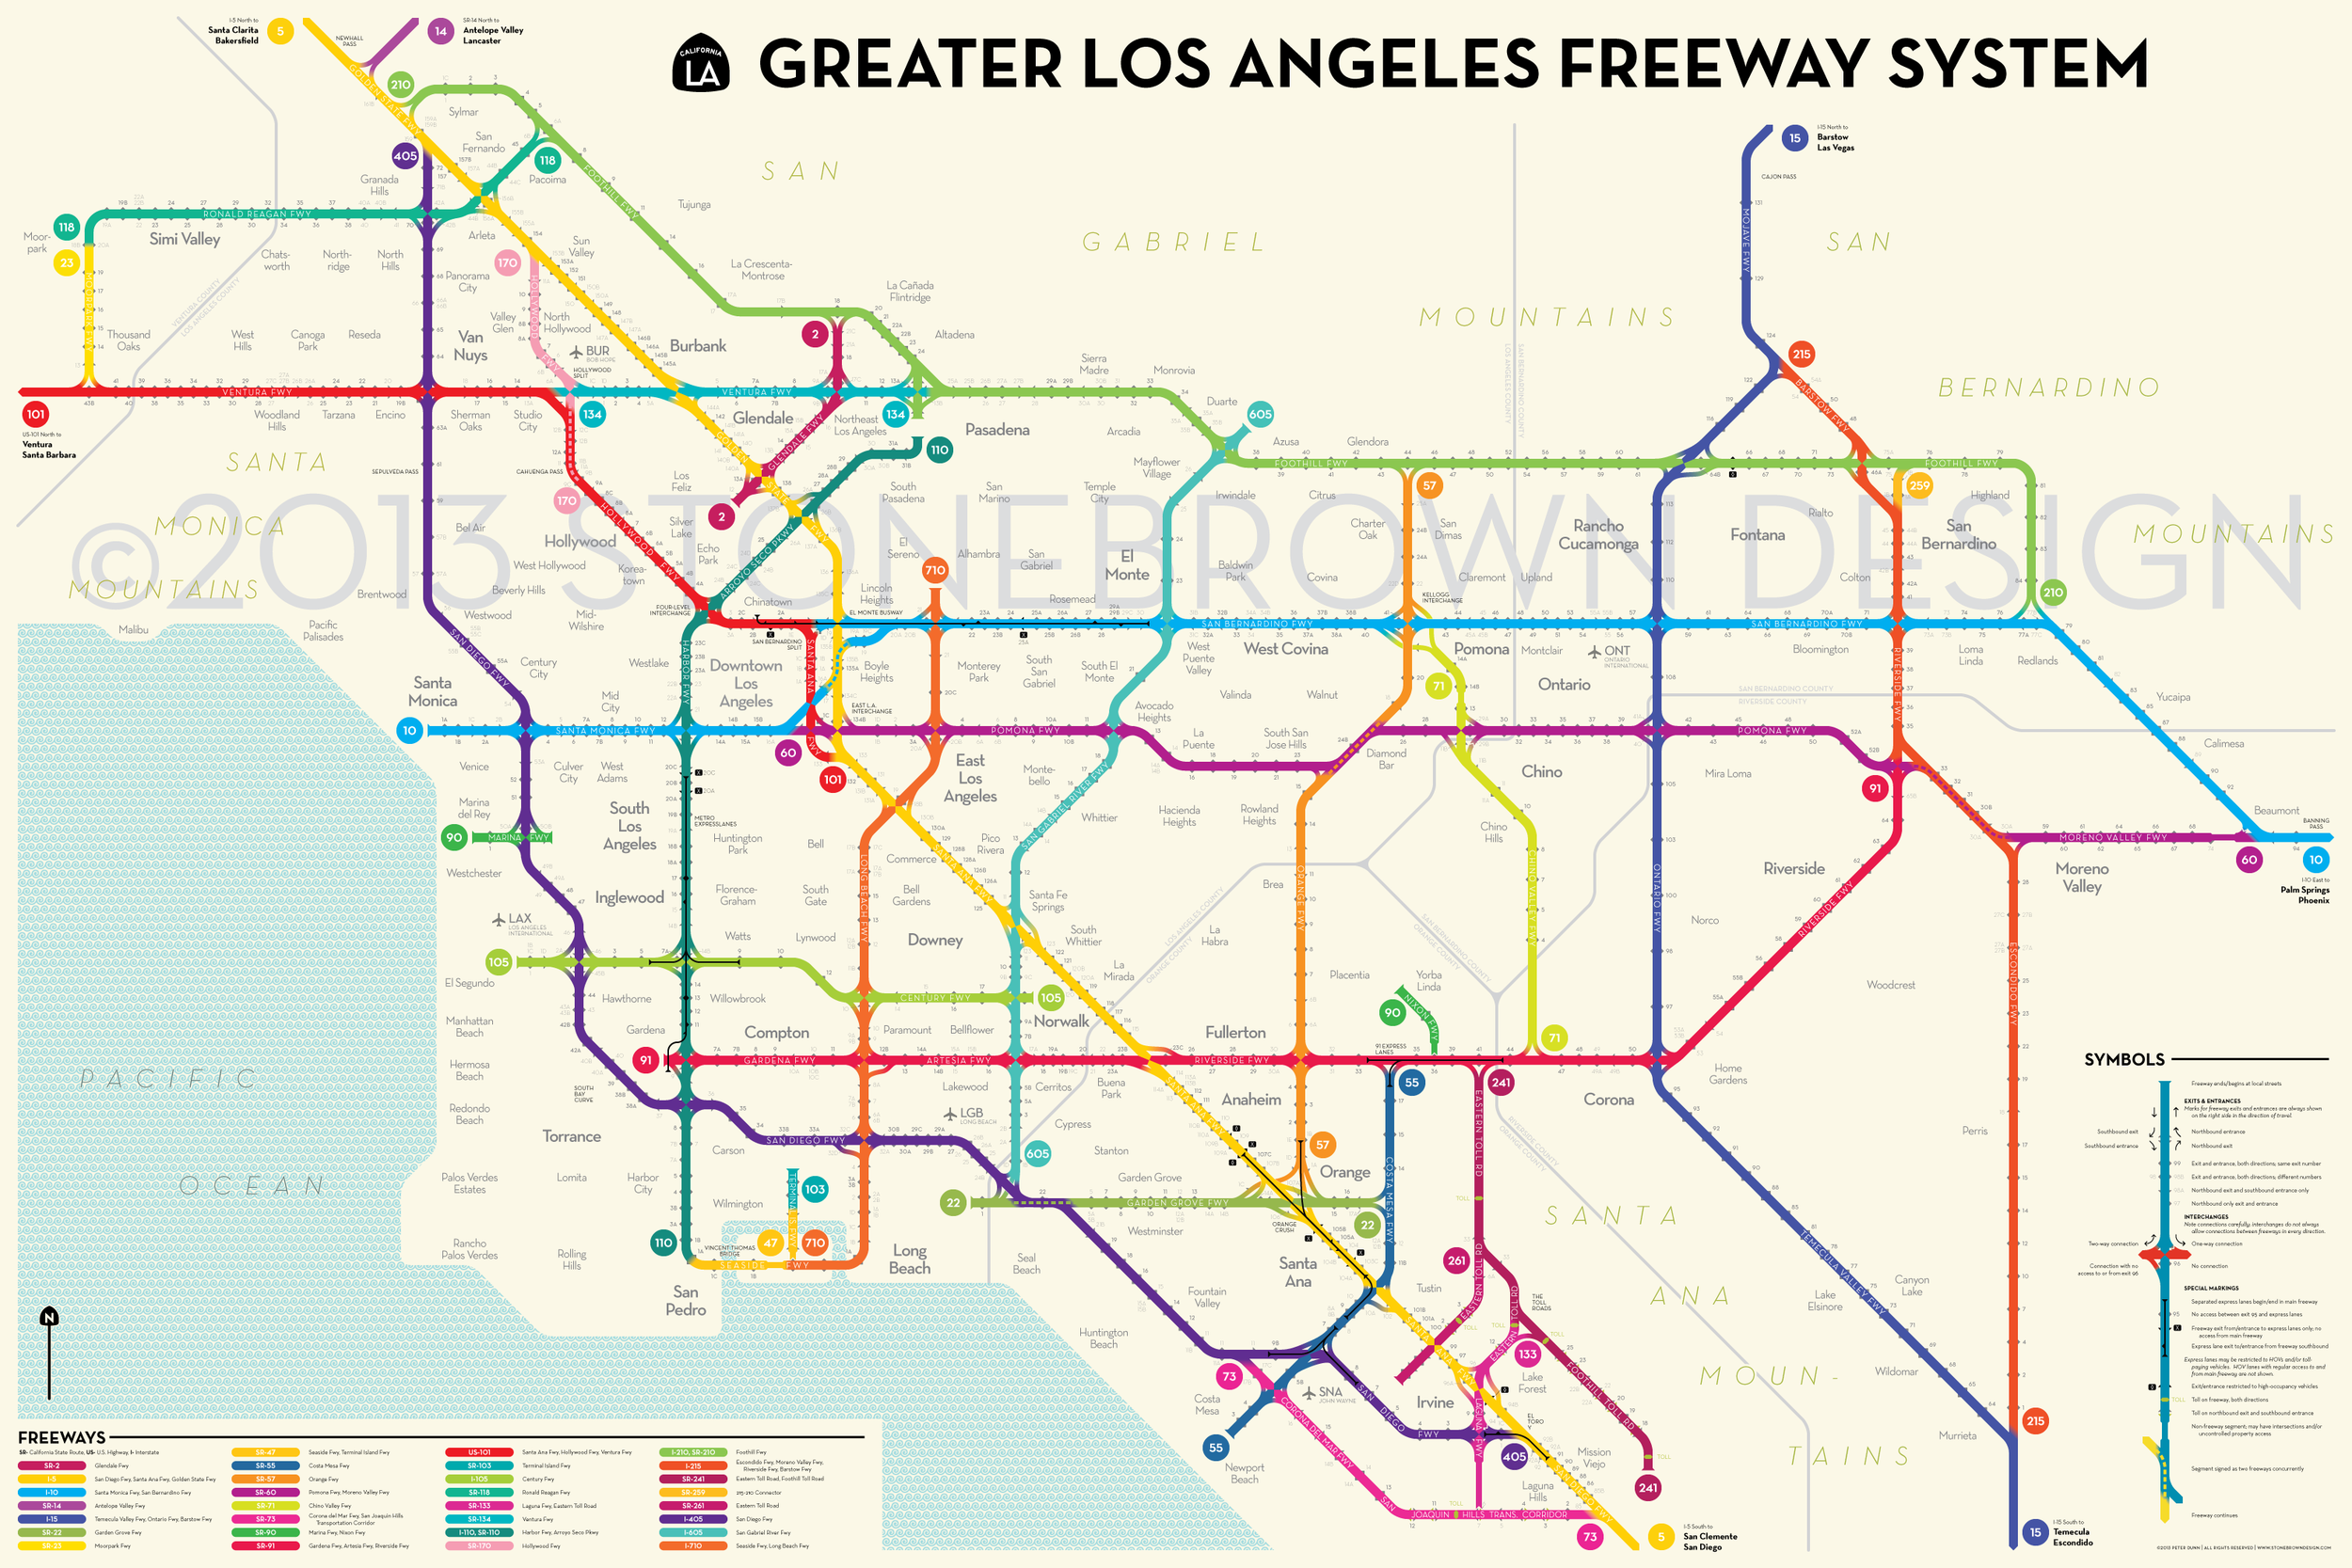 Figure 3- Los Angeles stylized freeway map, by Peter Dunn (Stonebrown Designs)